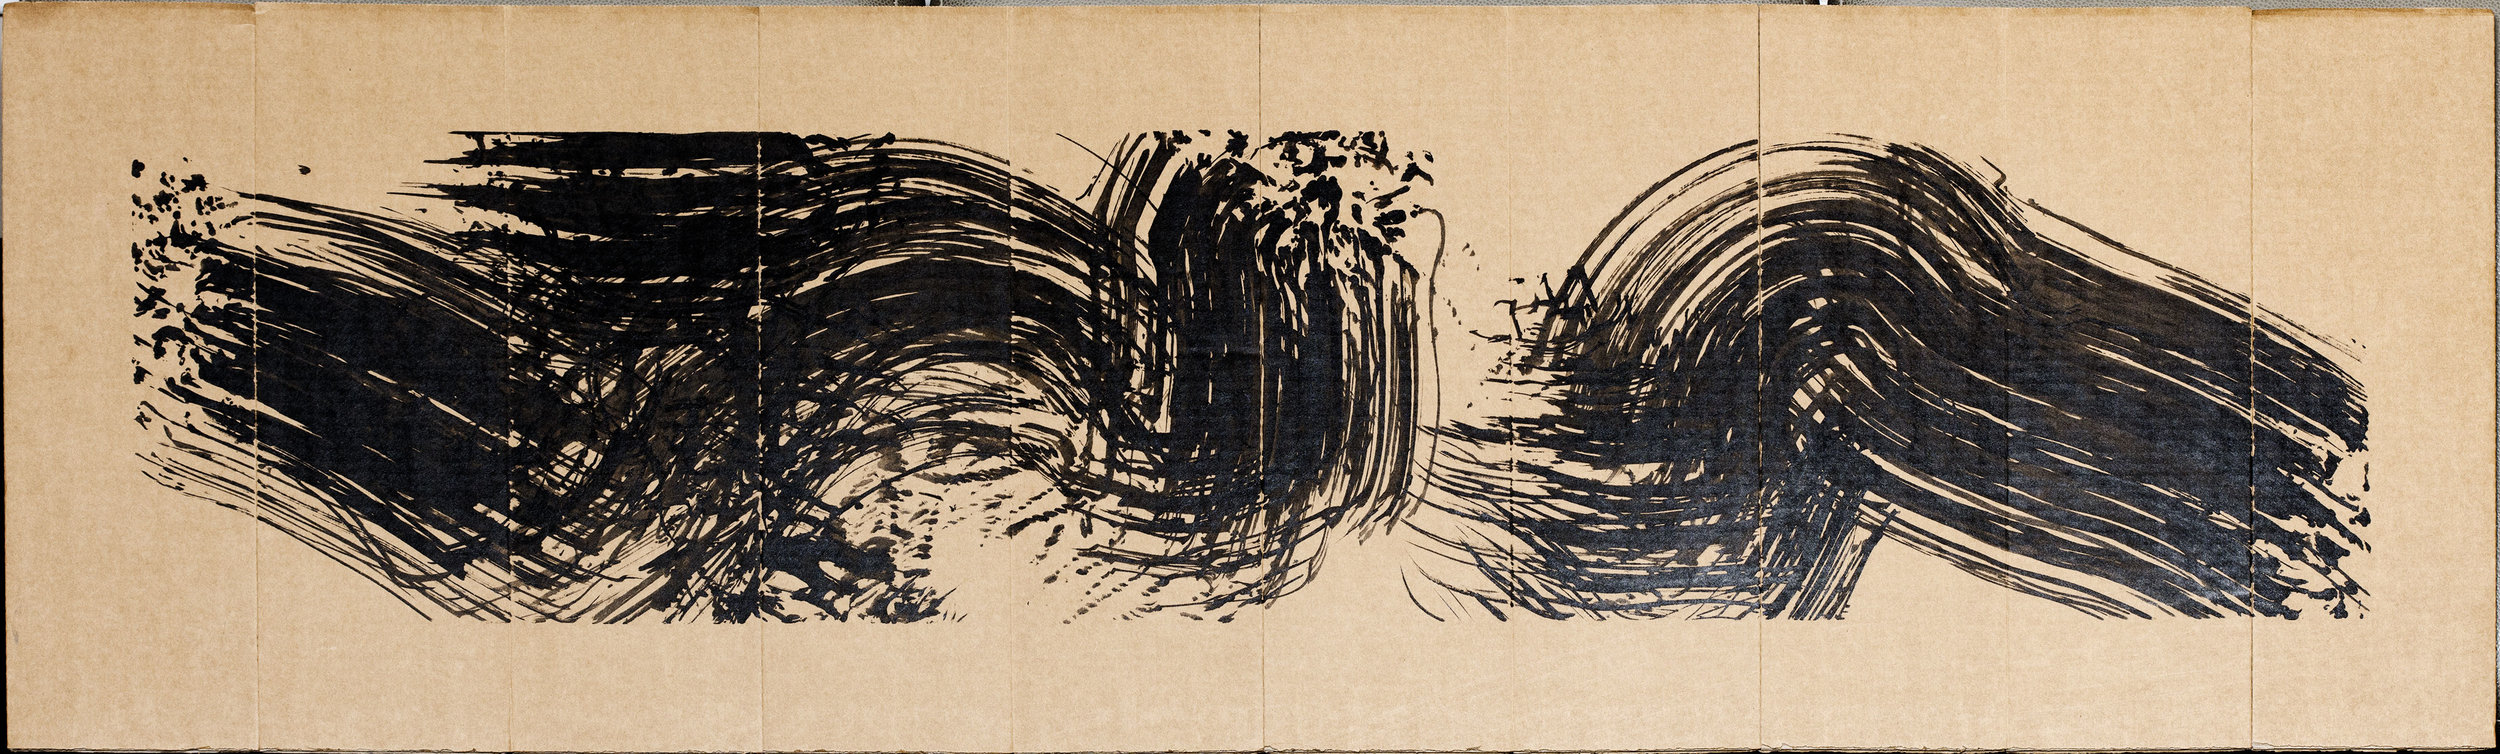 "Sirens I (recto)  2016  ink on folding corrugated cardboard  19"" x 72"""